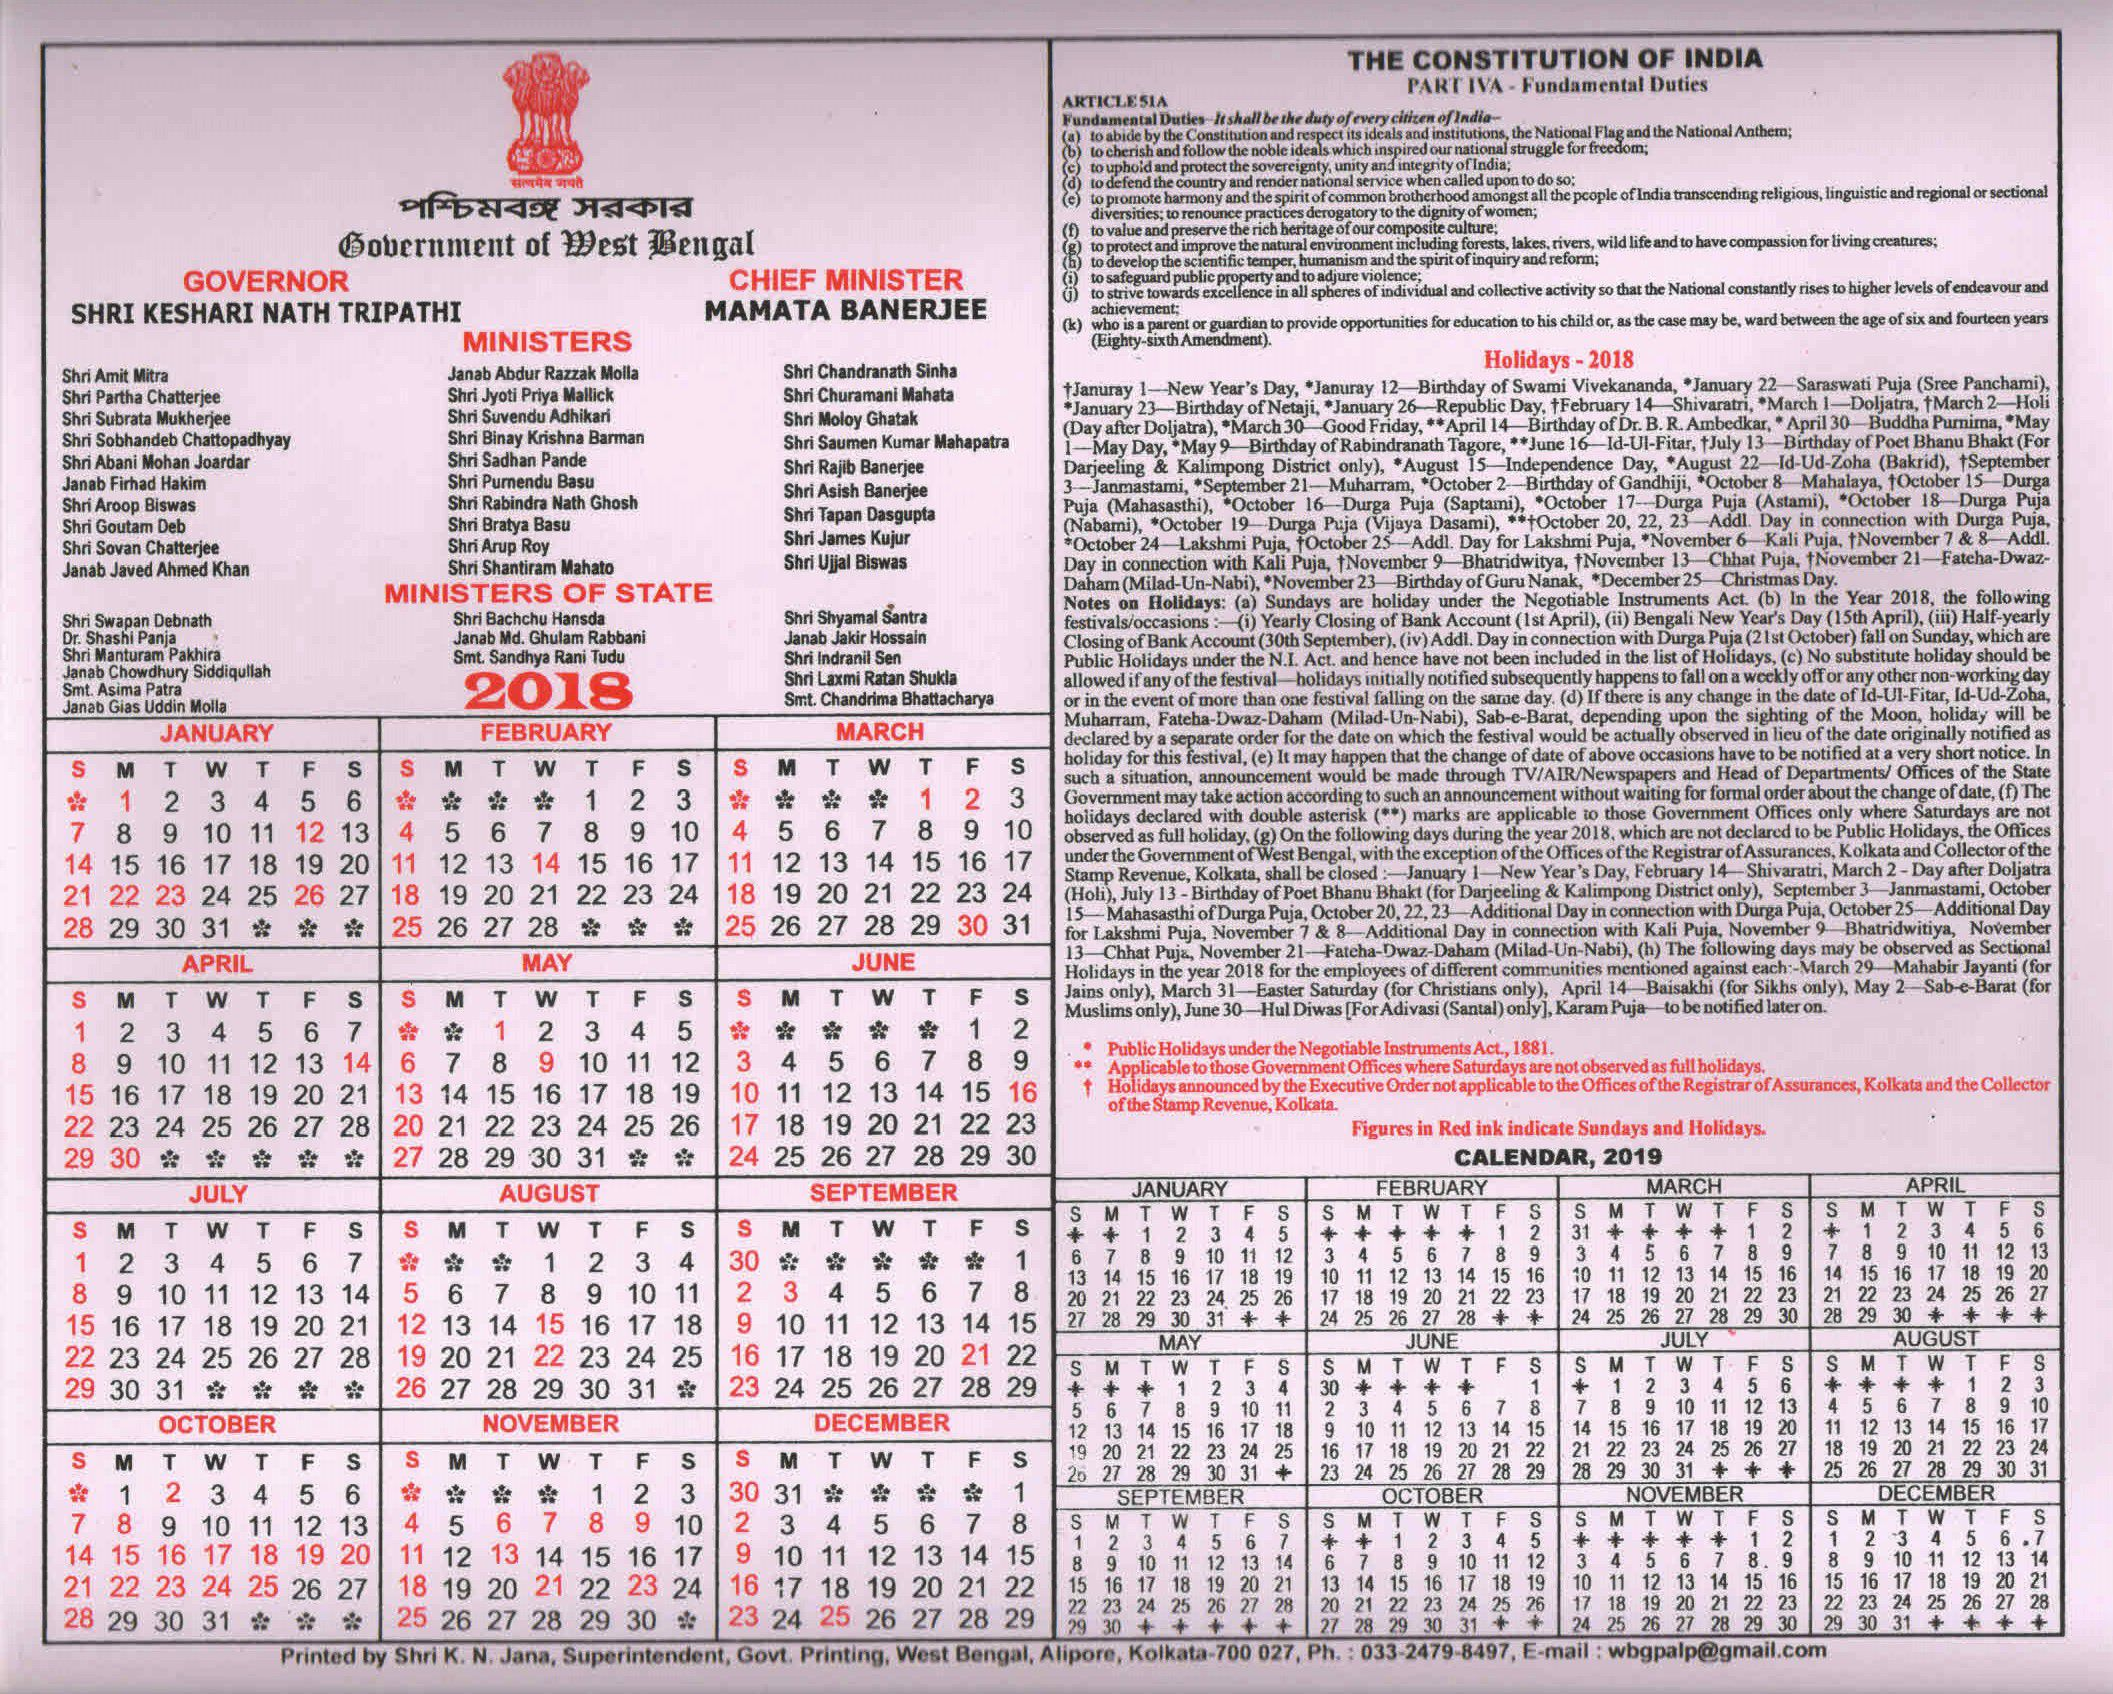 click for full size calendar 2018 government of west bengal